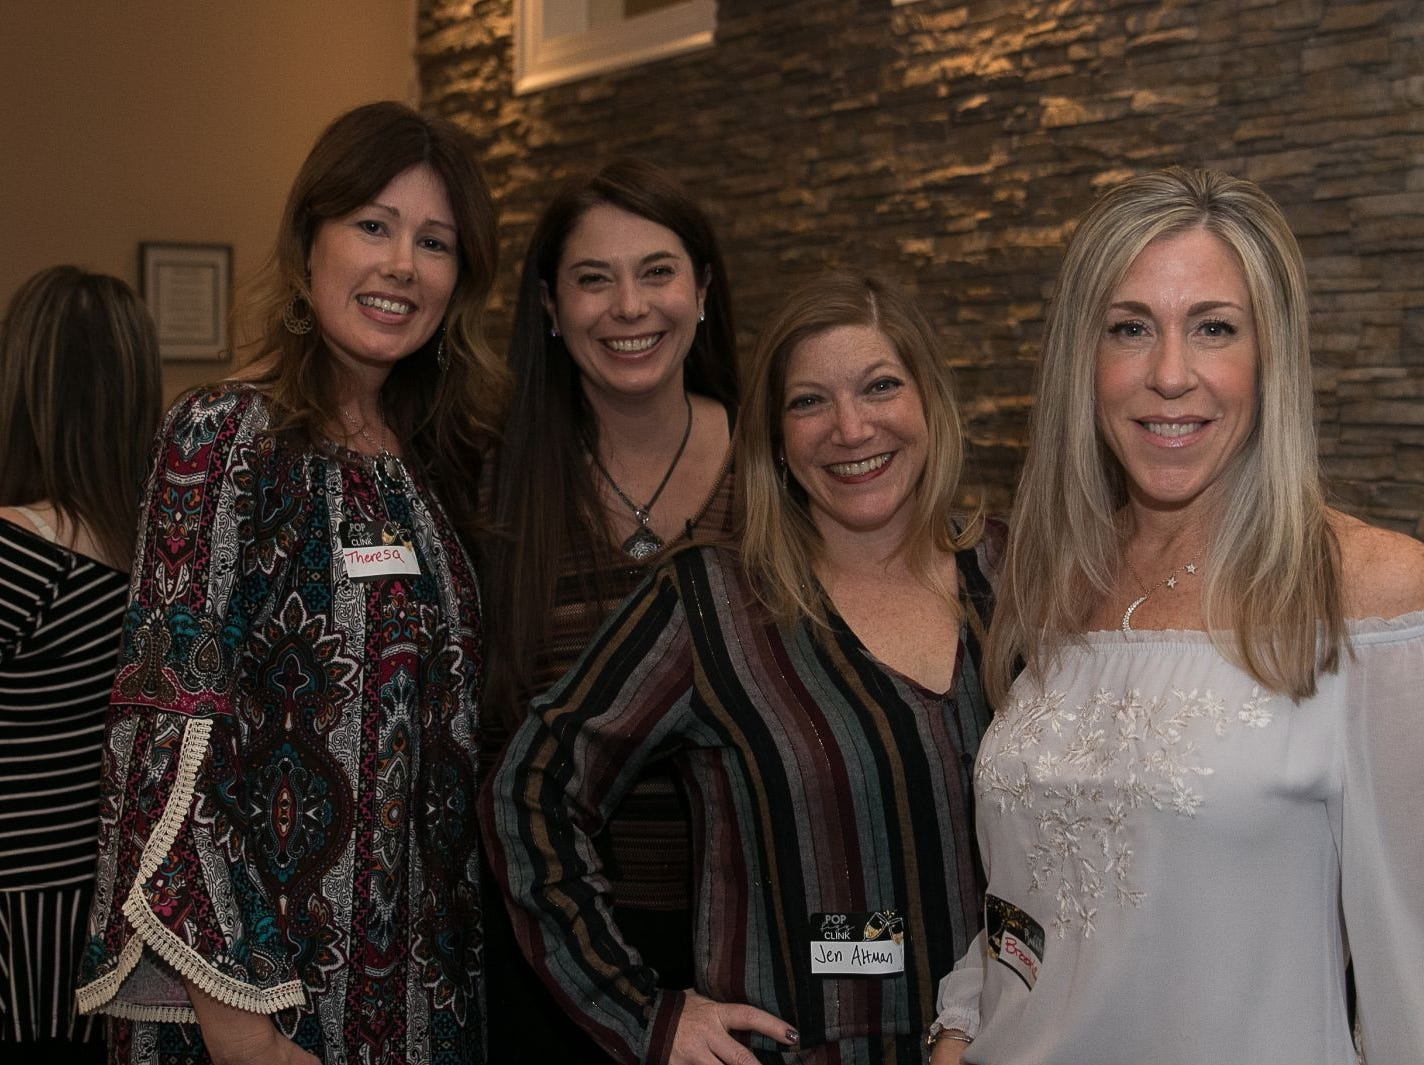 Theresa Lalime, Judy Silver, Jen Altman, Brooke Young. The Saddle River Valley Junior Woman's Club held an inductee dinnerfor incoming members at Bellisimo Restaurante in Montvale. 01/23/2019